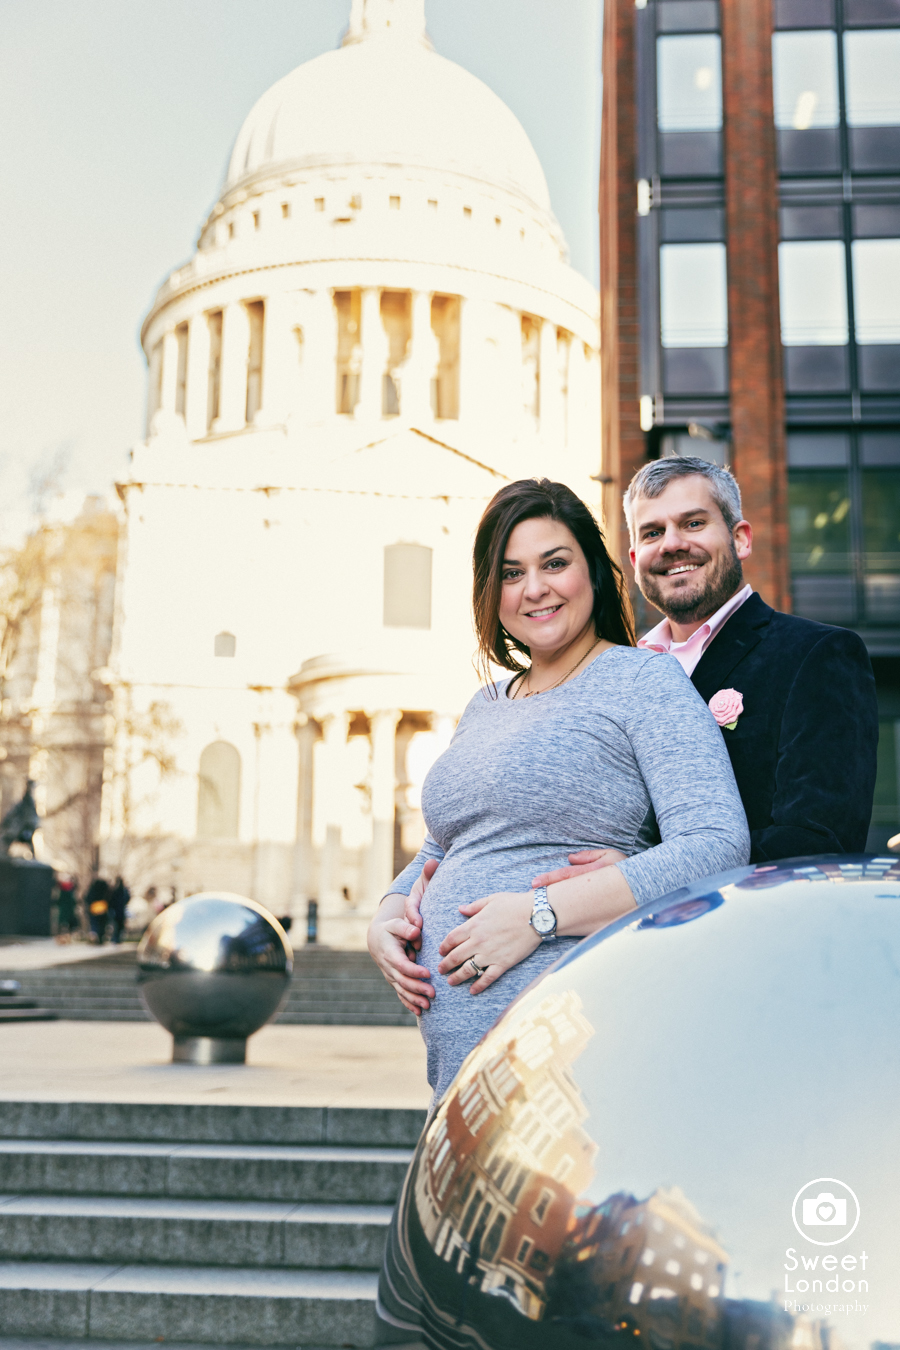 Couple and Maternity Photo Session in London (12)